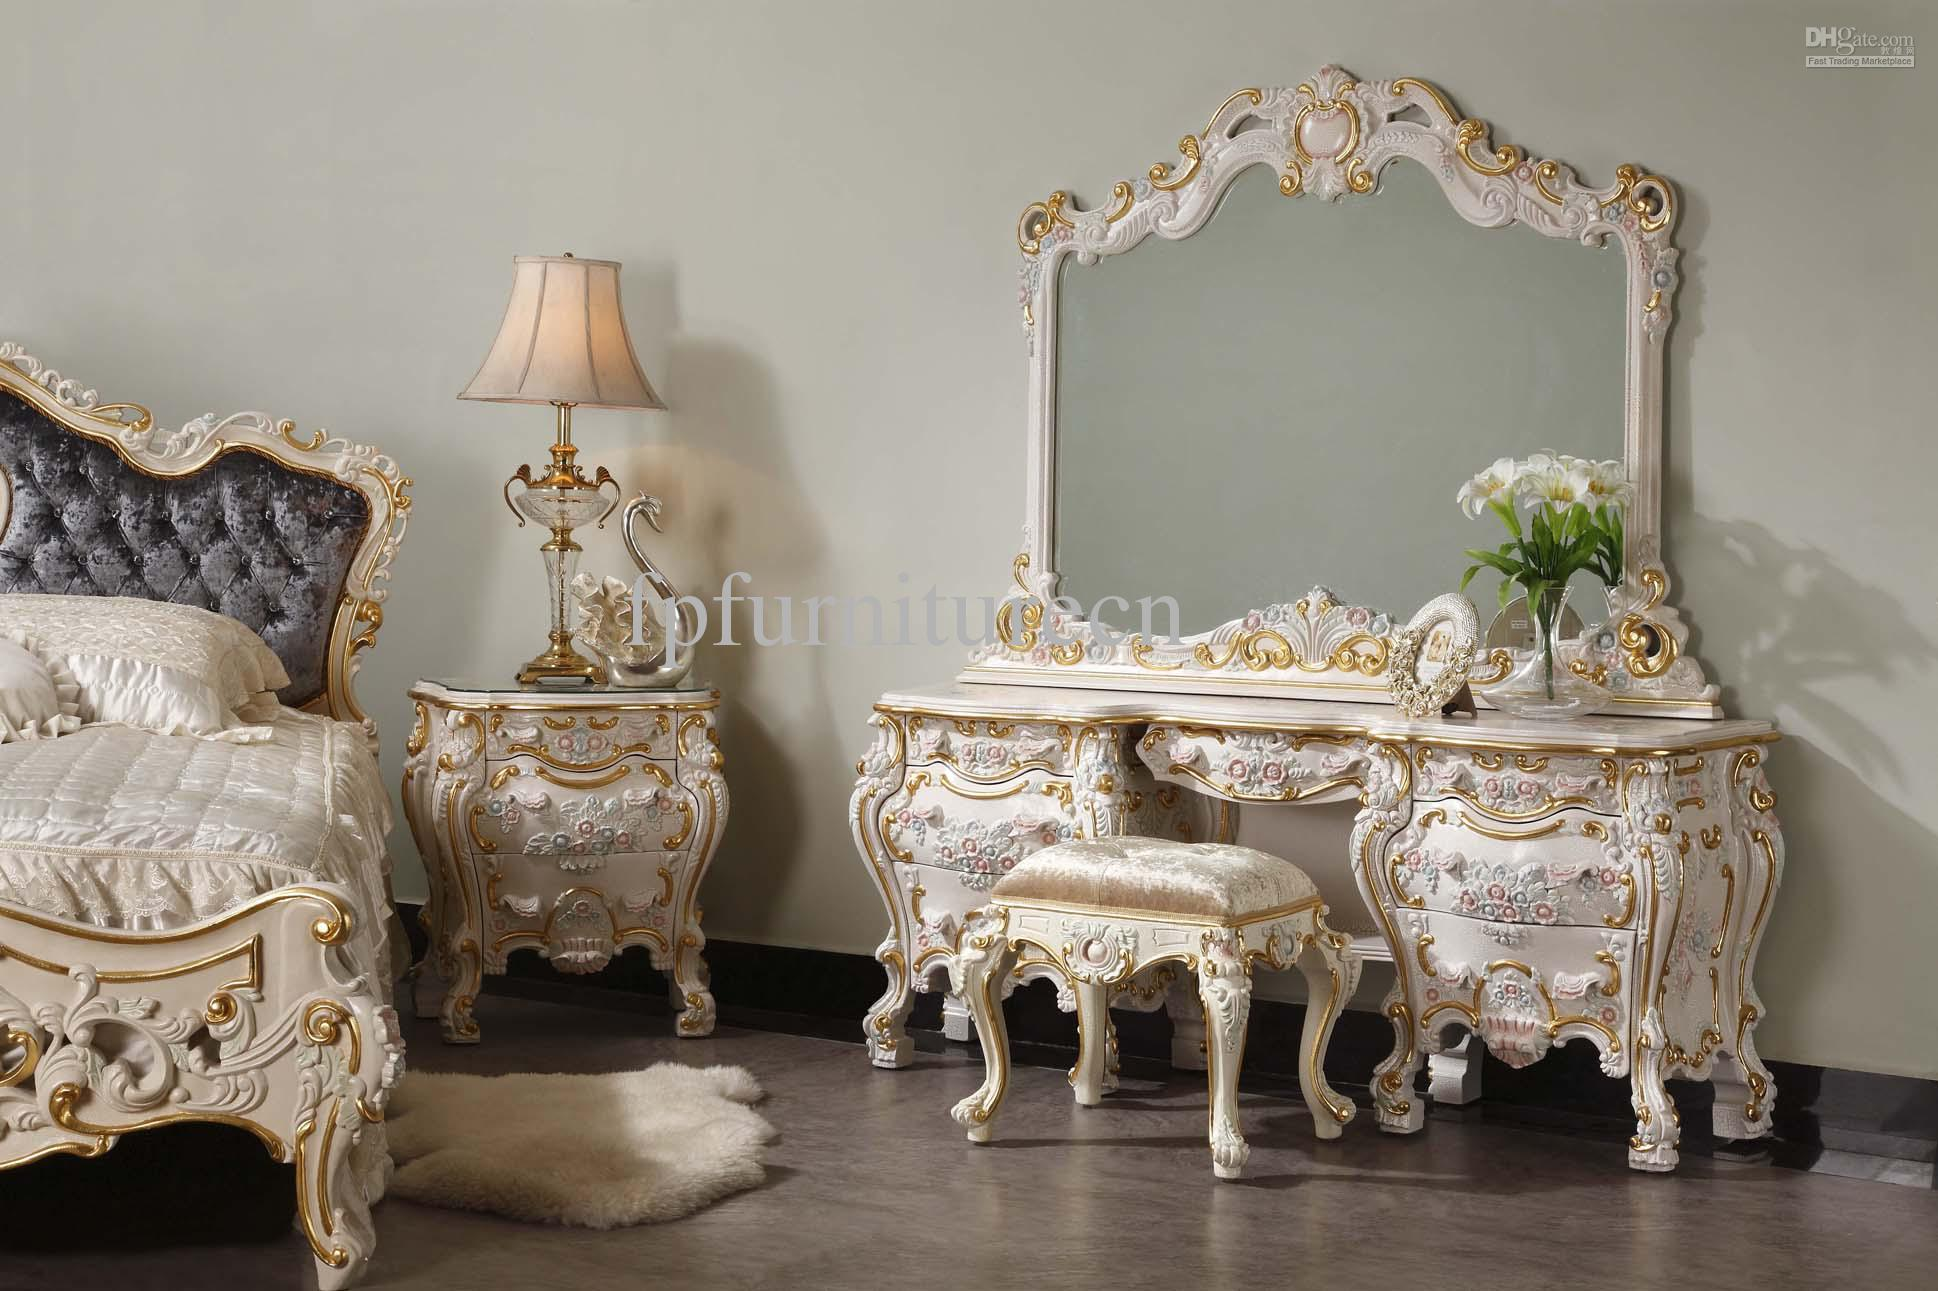 french style furniture gorgeous palace furniture,french chateau furniture,home furniture free  shipping NWXYOEW